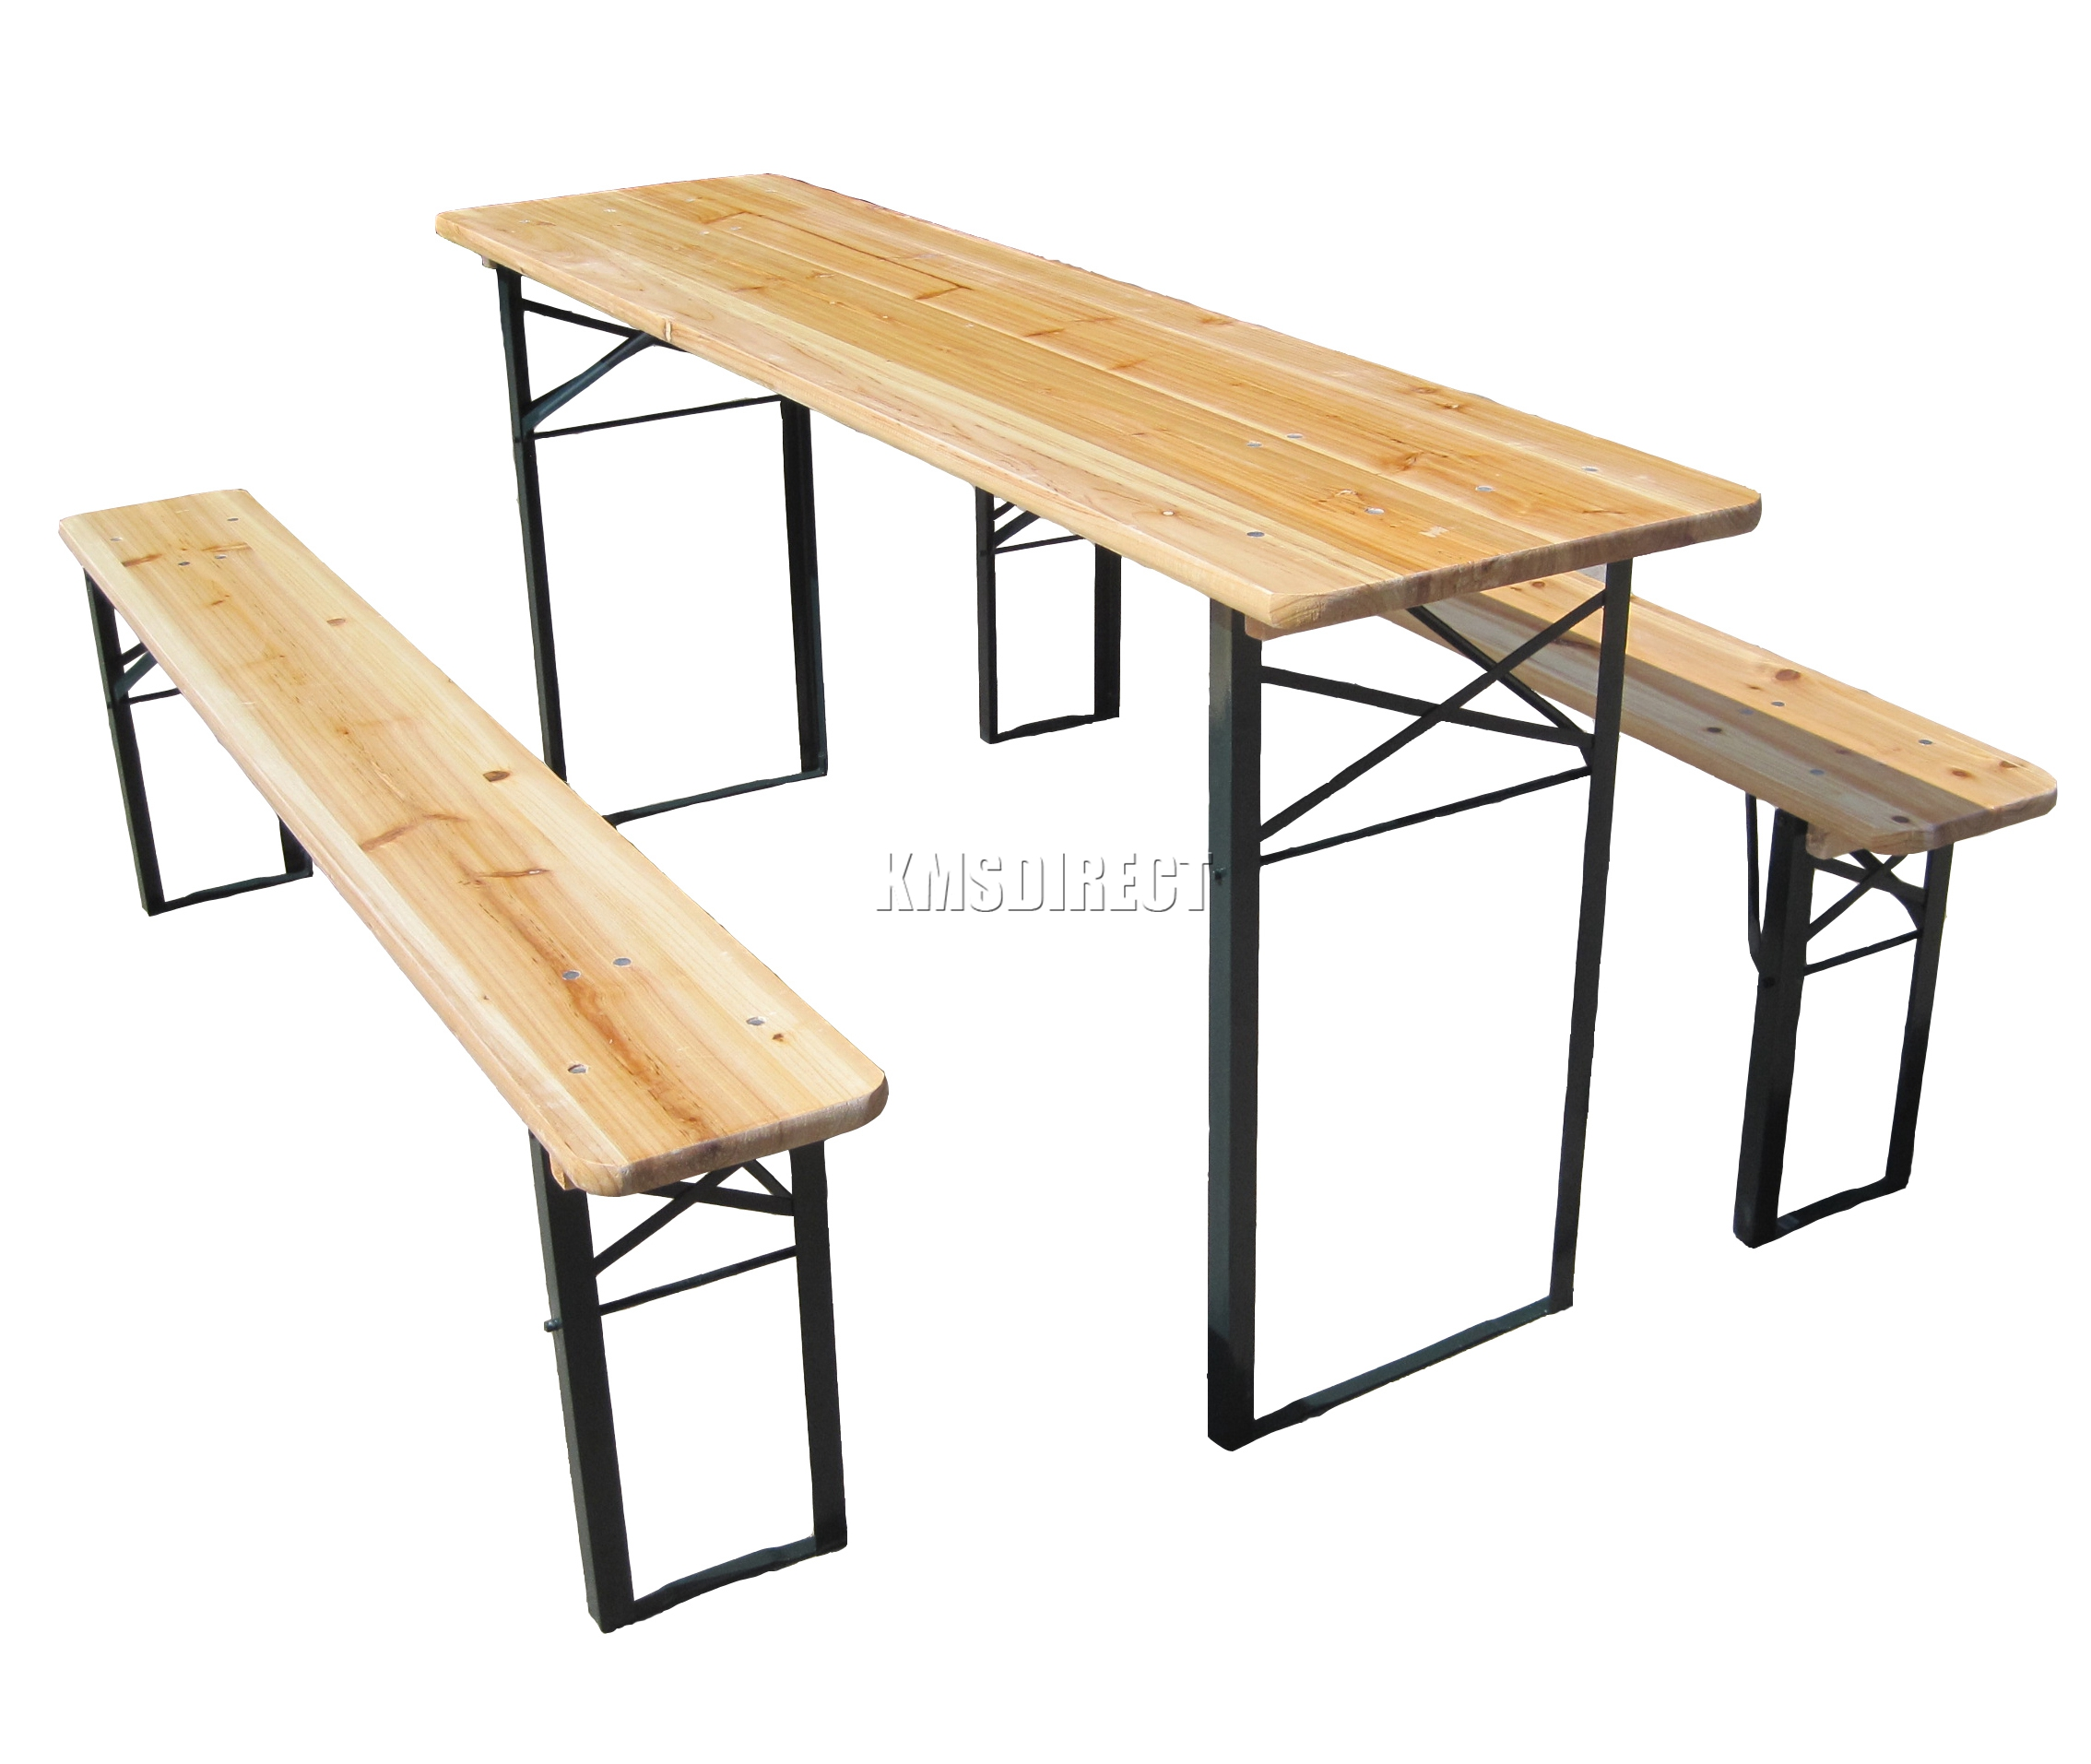 Outdoor Wooden Folding Beer Table Bench Set Trestle Garden  : FURNITURE NA FBEERTABLE KMSWM001 from www.ebay.co.uk size 2268 x 1913 jpeg 818kB